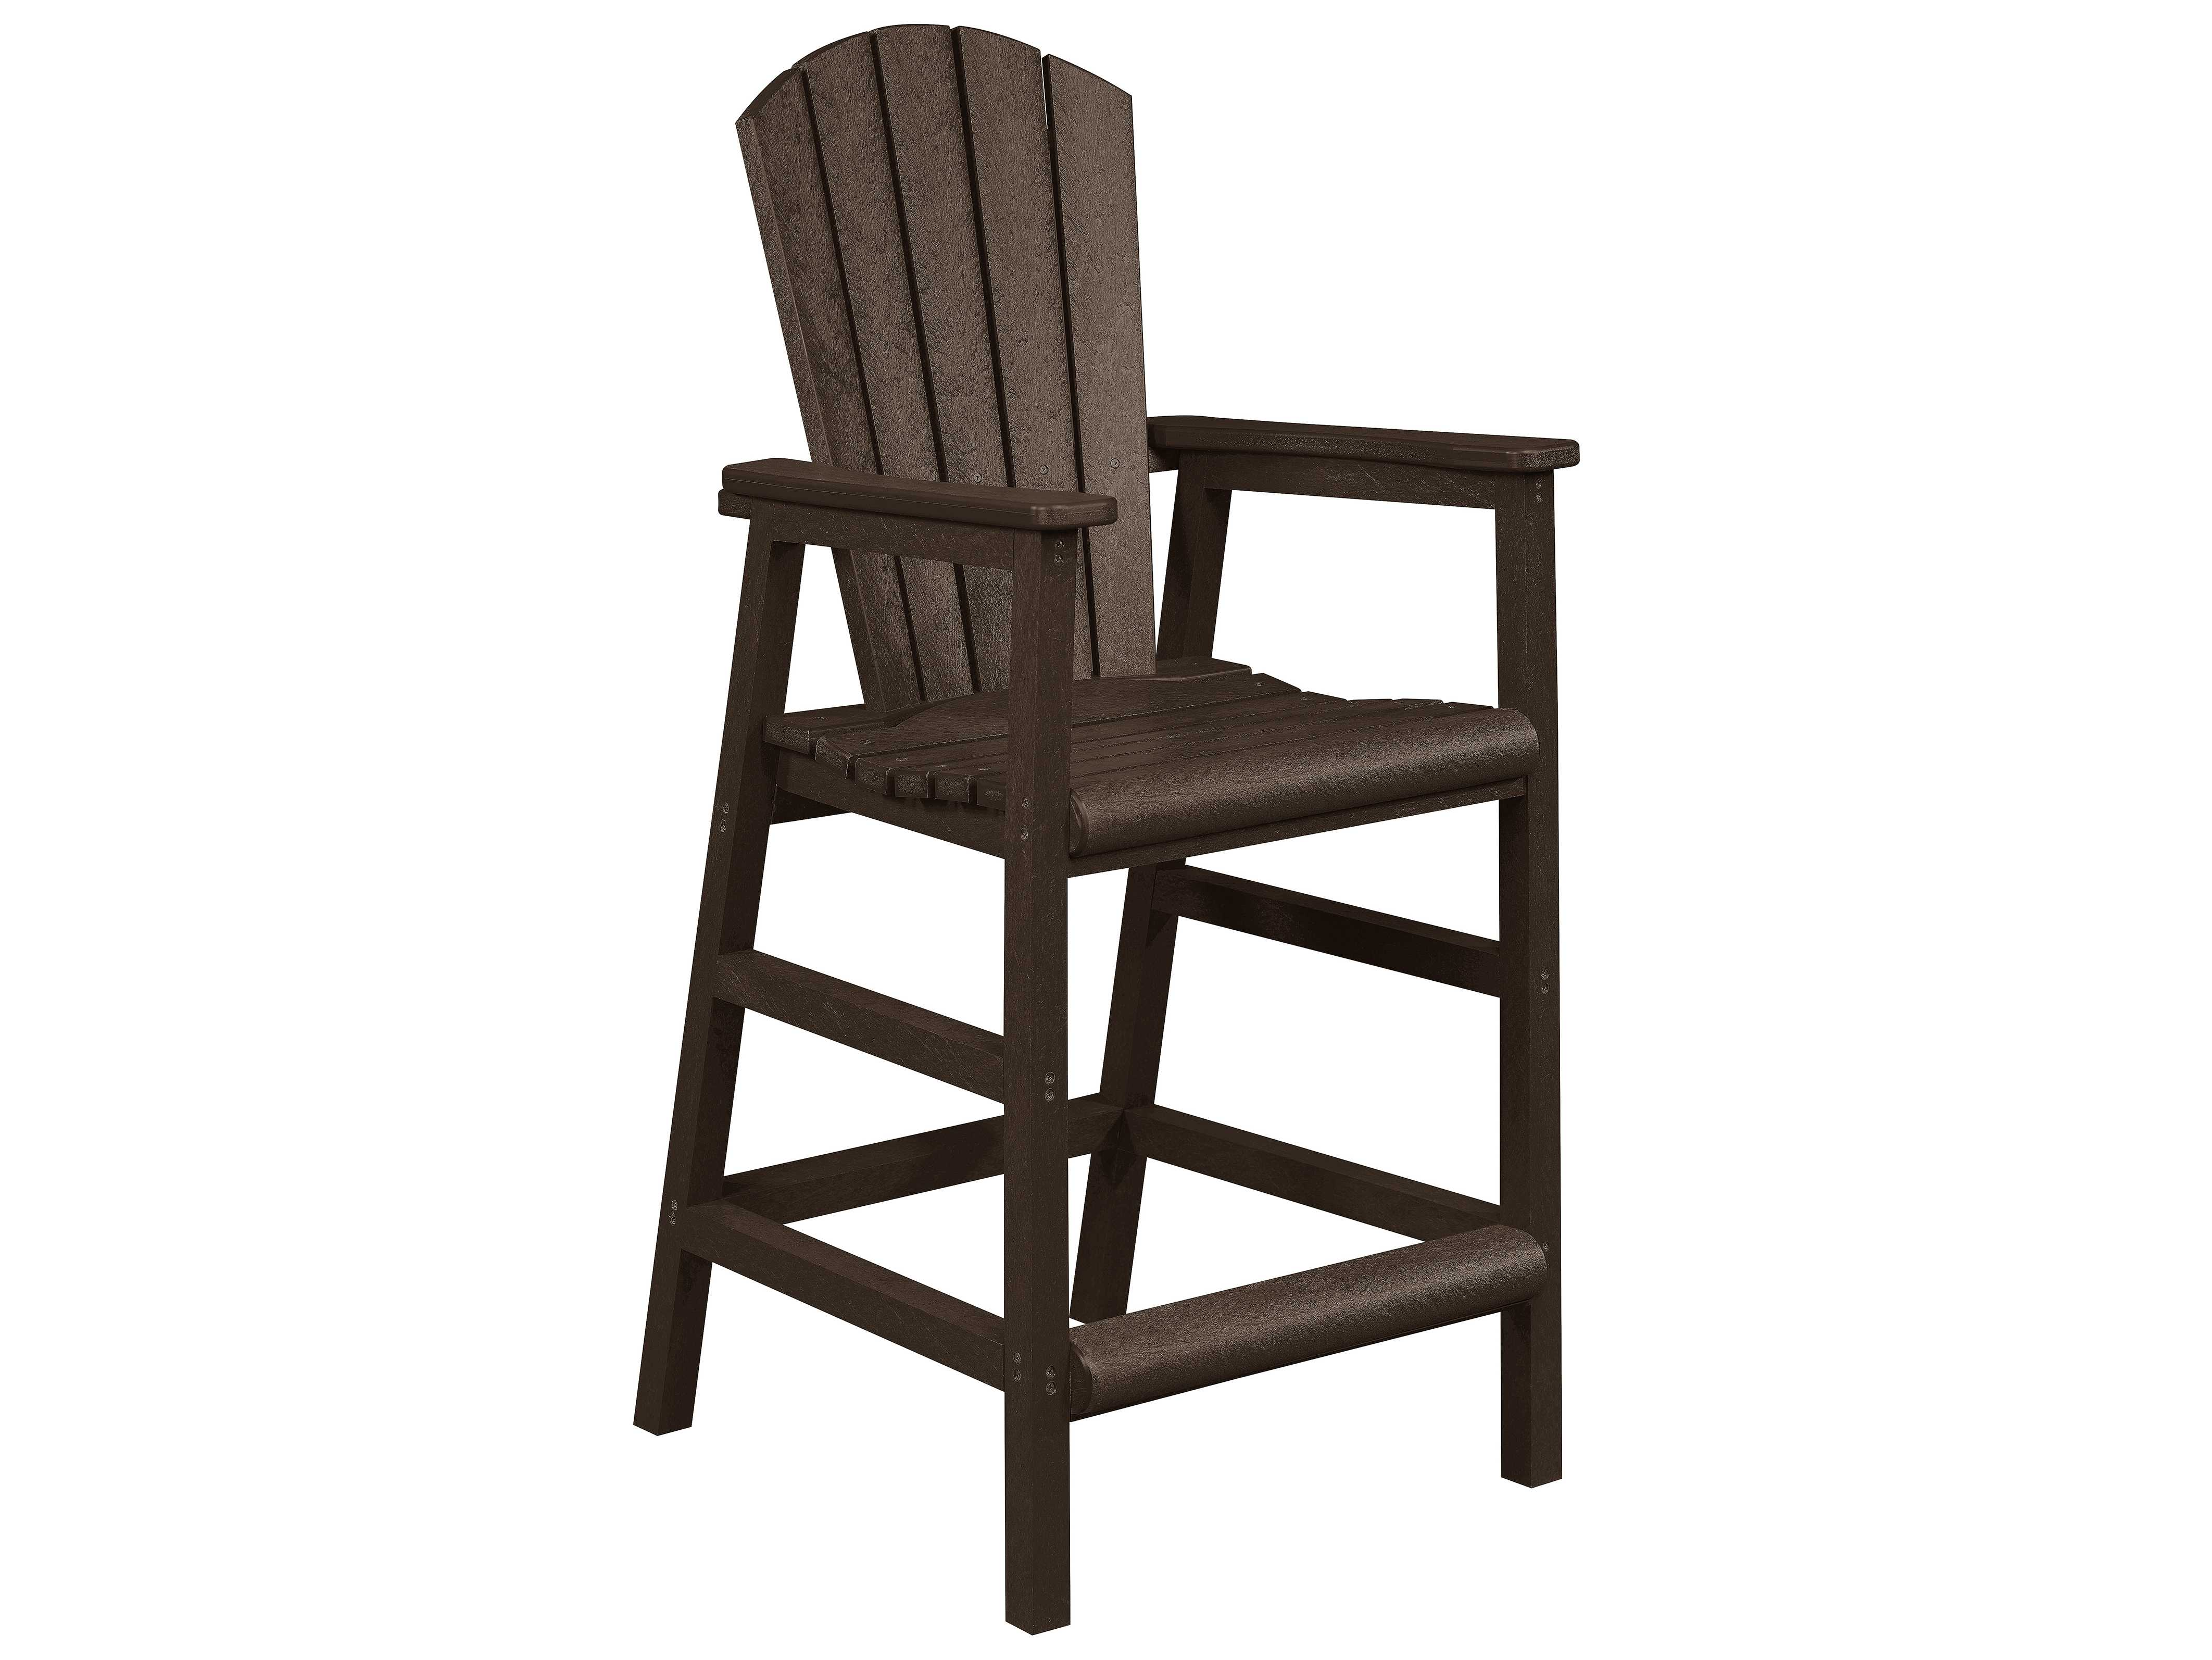 adirondack style dining chairs solid wood table and c r plastic generation recycled